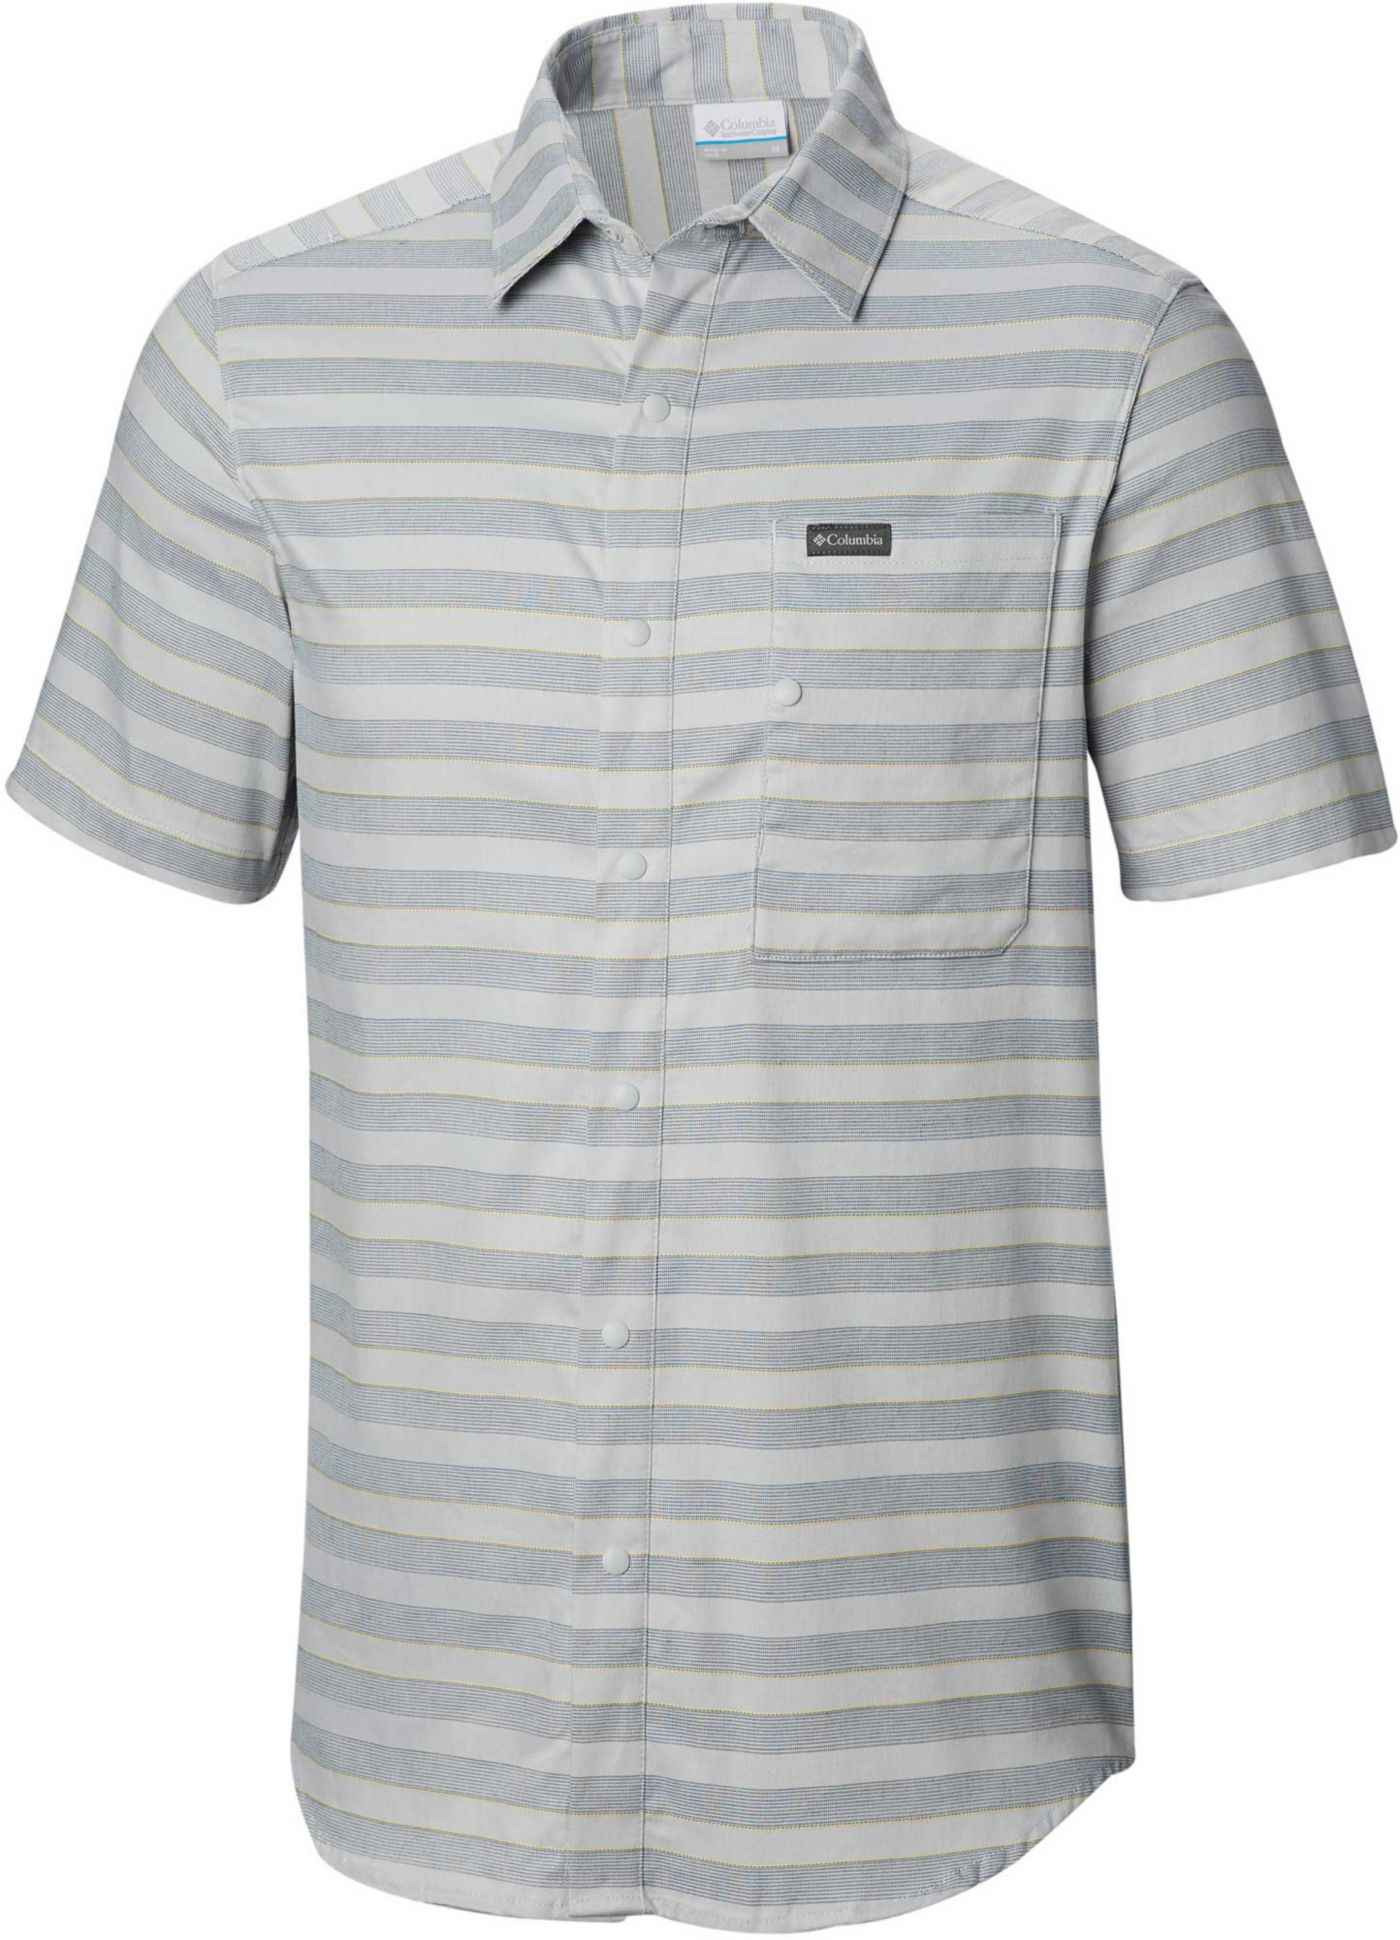 Columbia Men's Shoals Point Short Sleeve Button Down Shirt